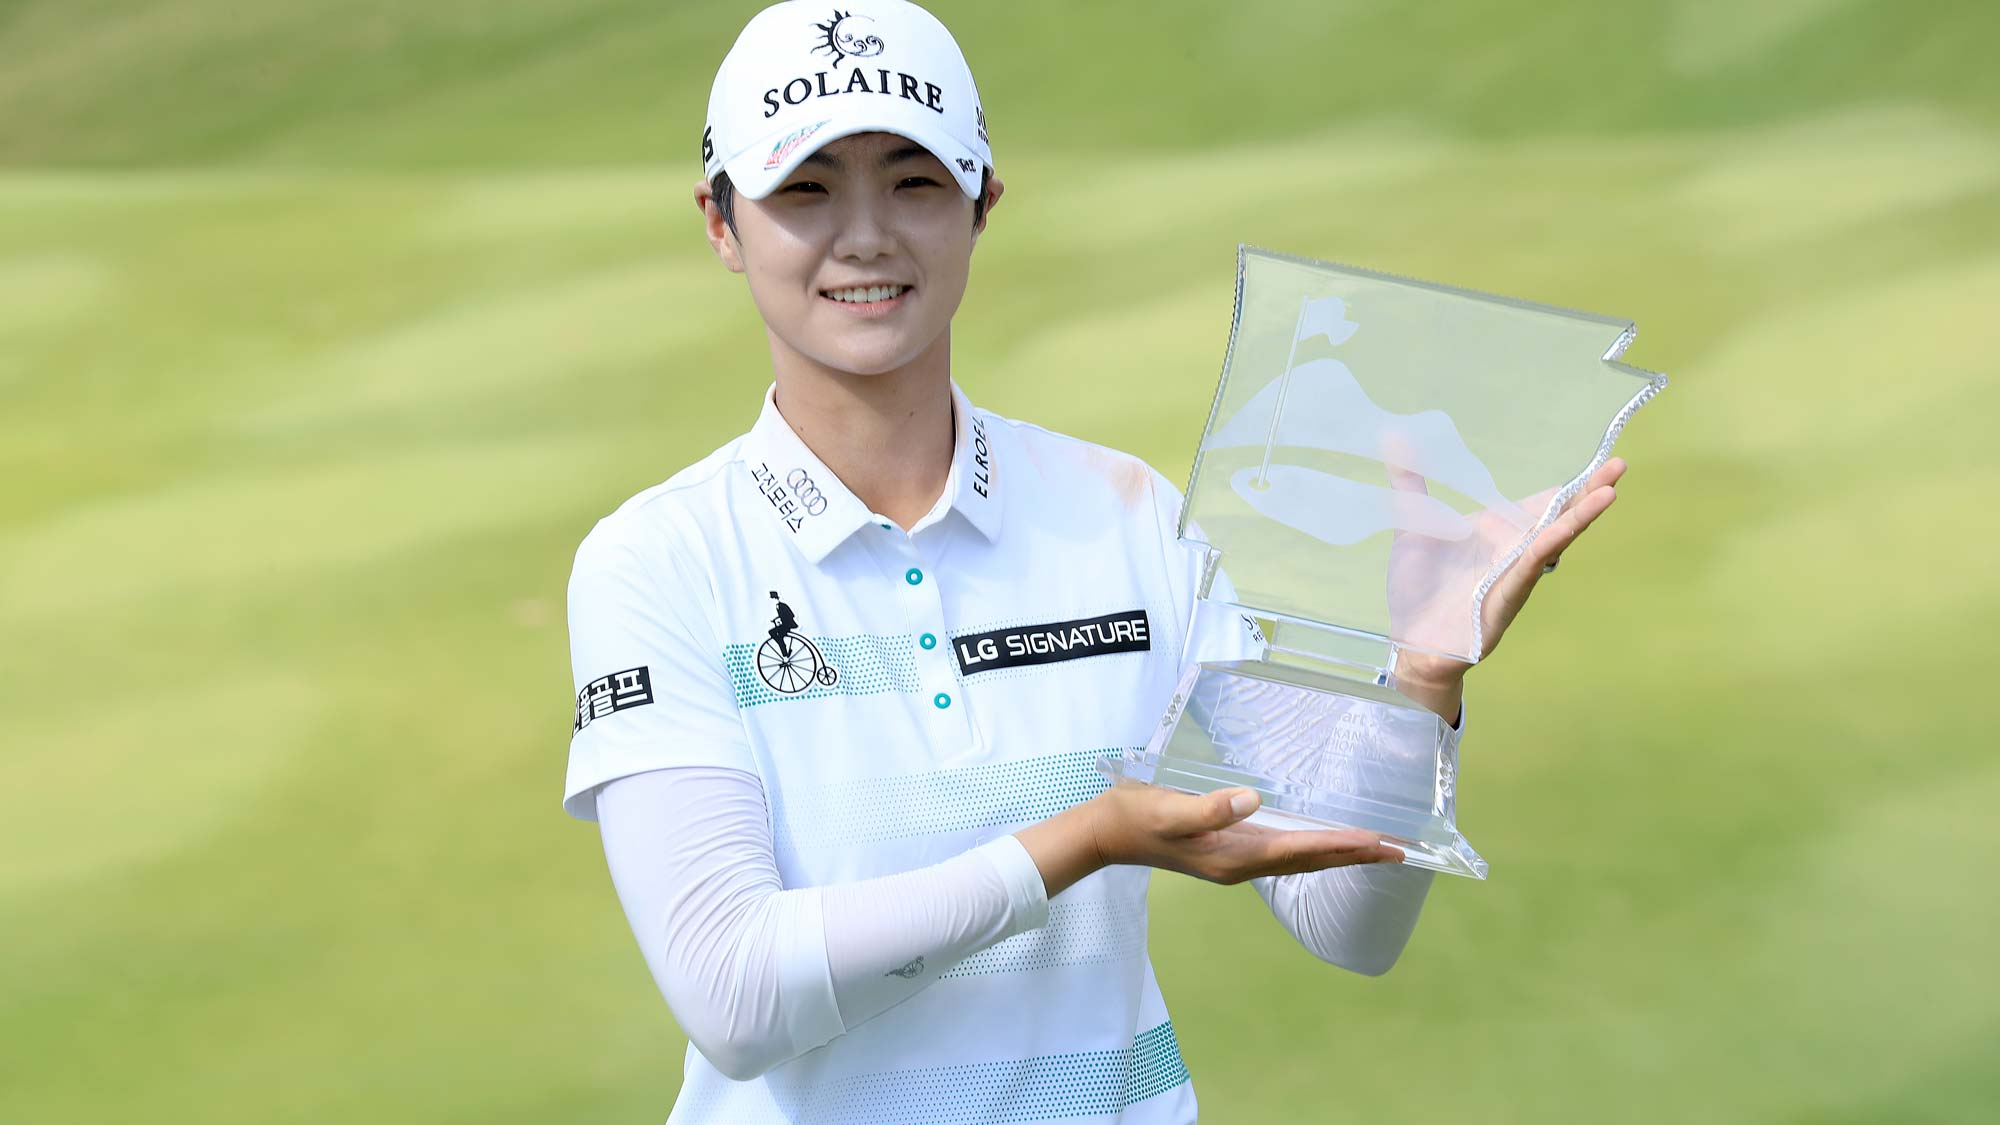 Sung Hyun Park has her #BagsPacked for the 2020 Diamond Resorts Tournament of Champions after her win at the Walmart NW Arkansas Championship